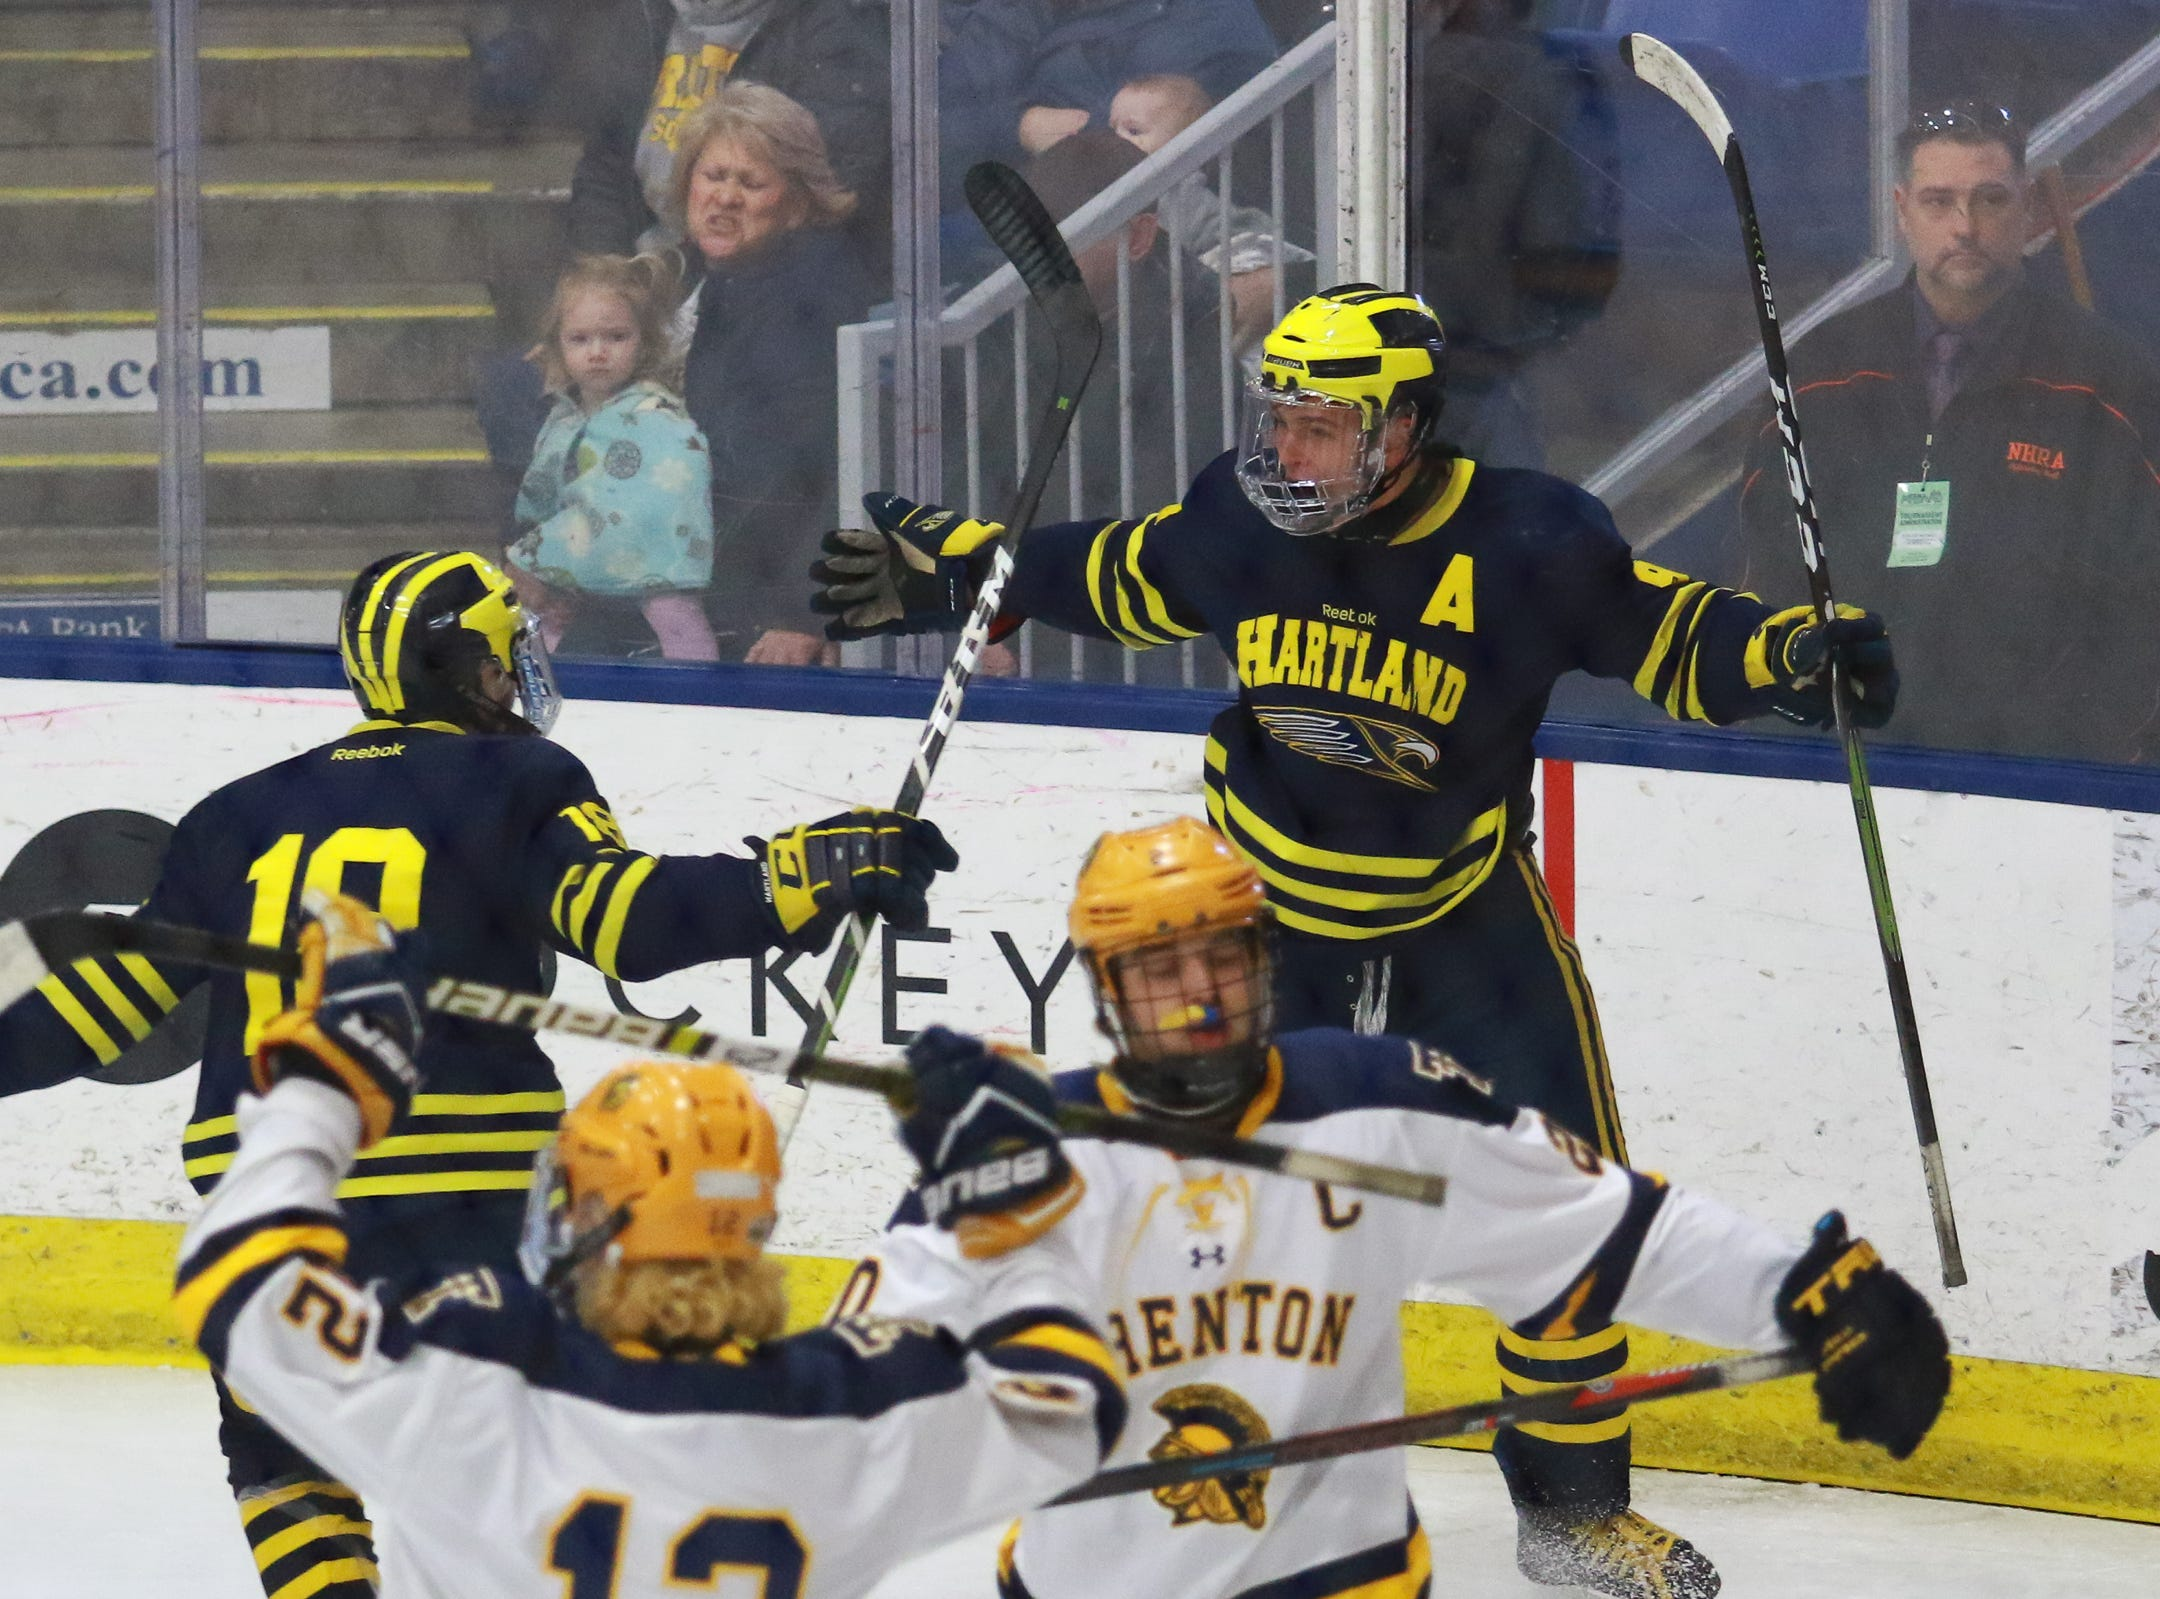 Hartland's Owen Pietila (right) and Brenden Tulpa (18) celebrate Pietila's first goal in a 4-0 victory over Trenton in the state Division 2 championship hockey game on Saturday, March 9, 2019 at USA Hockey Arena.